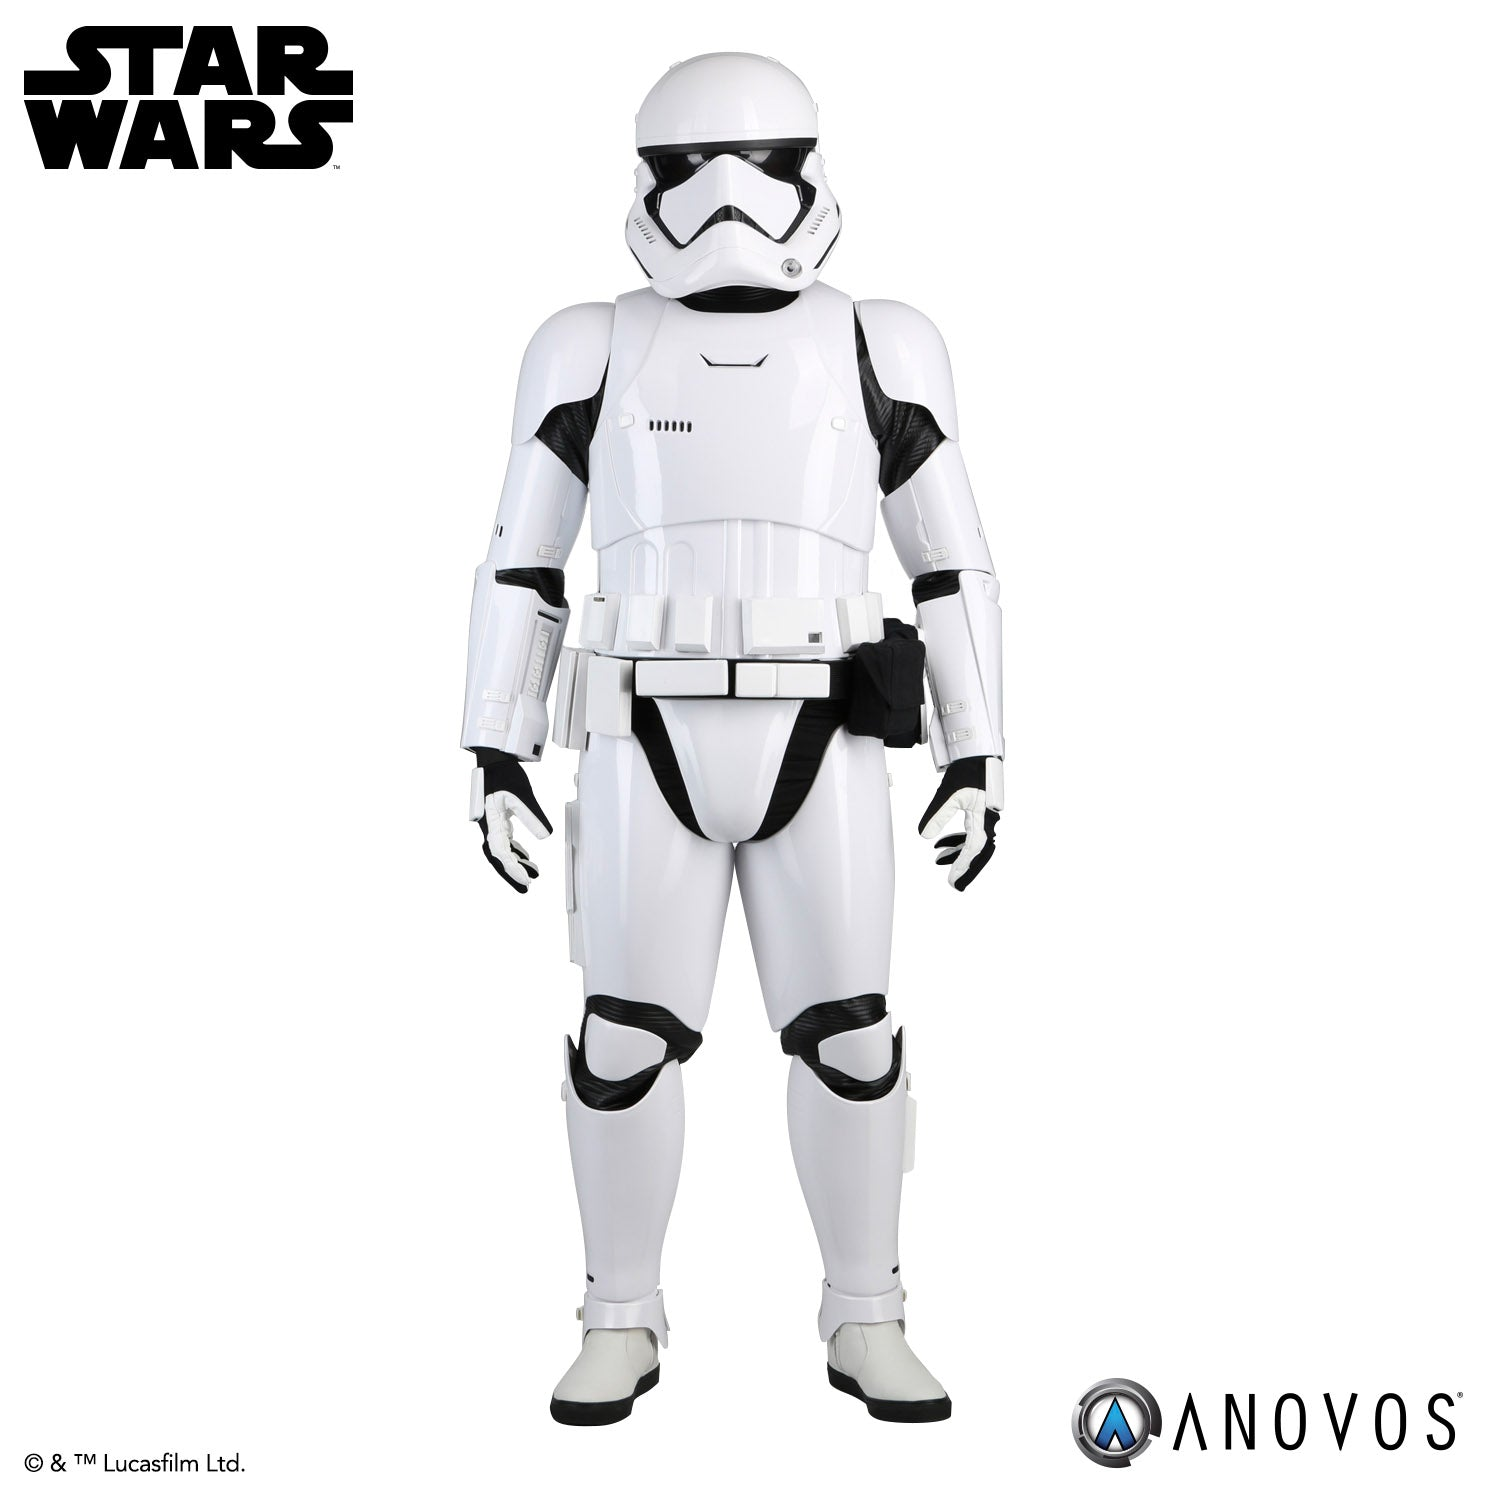 StAR WARS Clone Trooper /& Stormtrooper Action Figures Selection-45 Types options